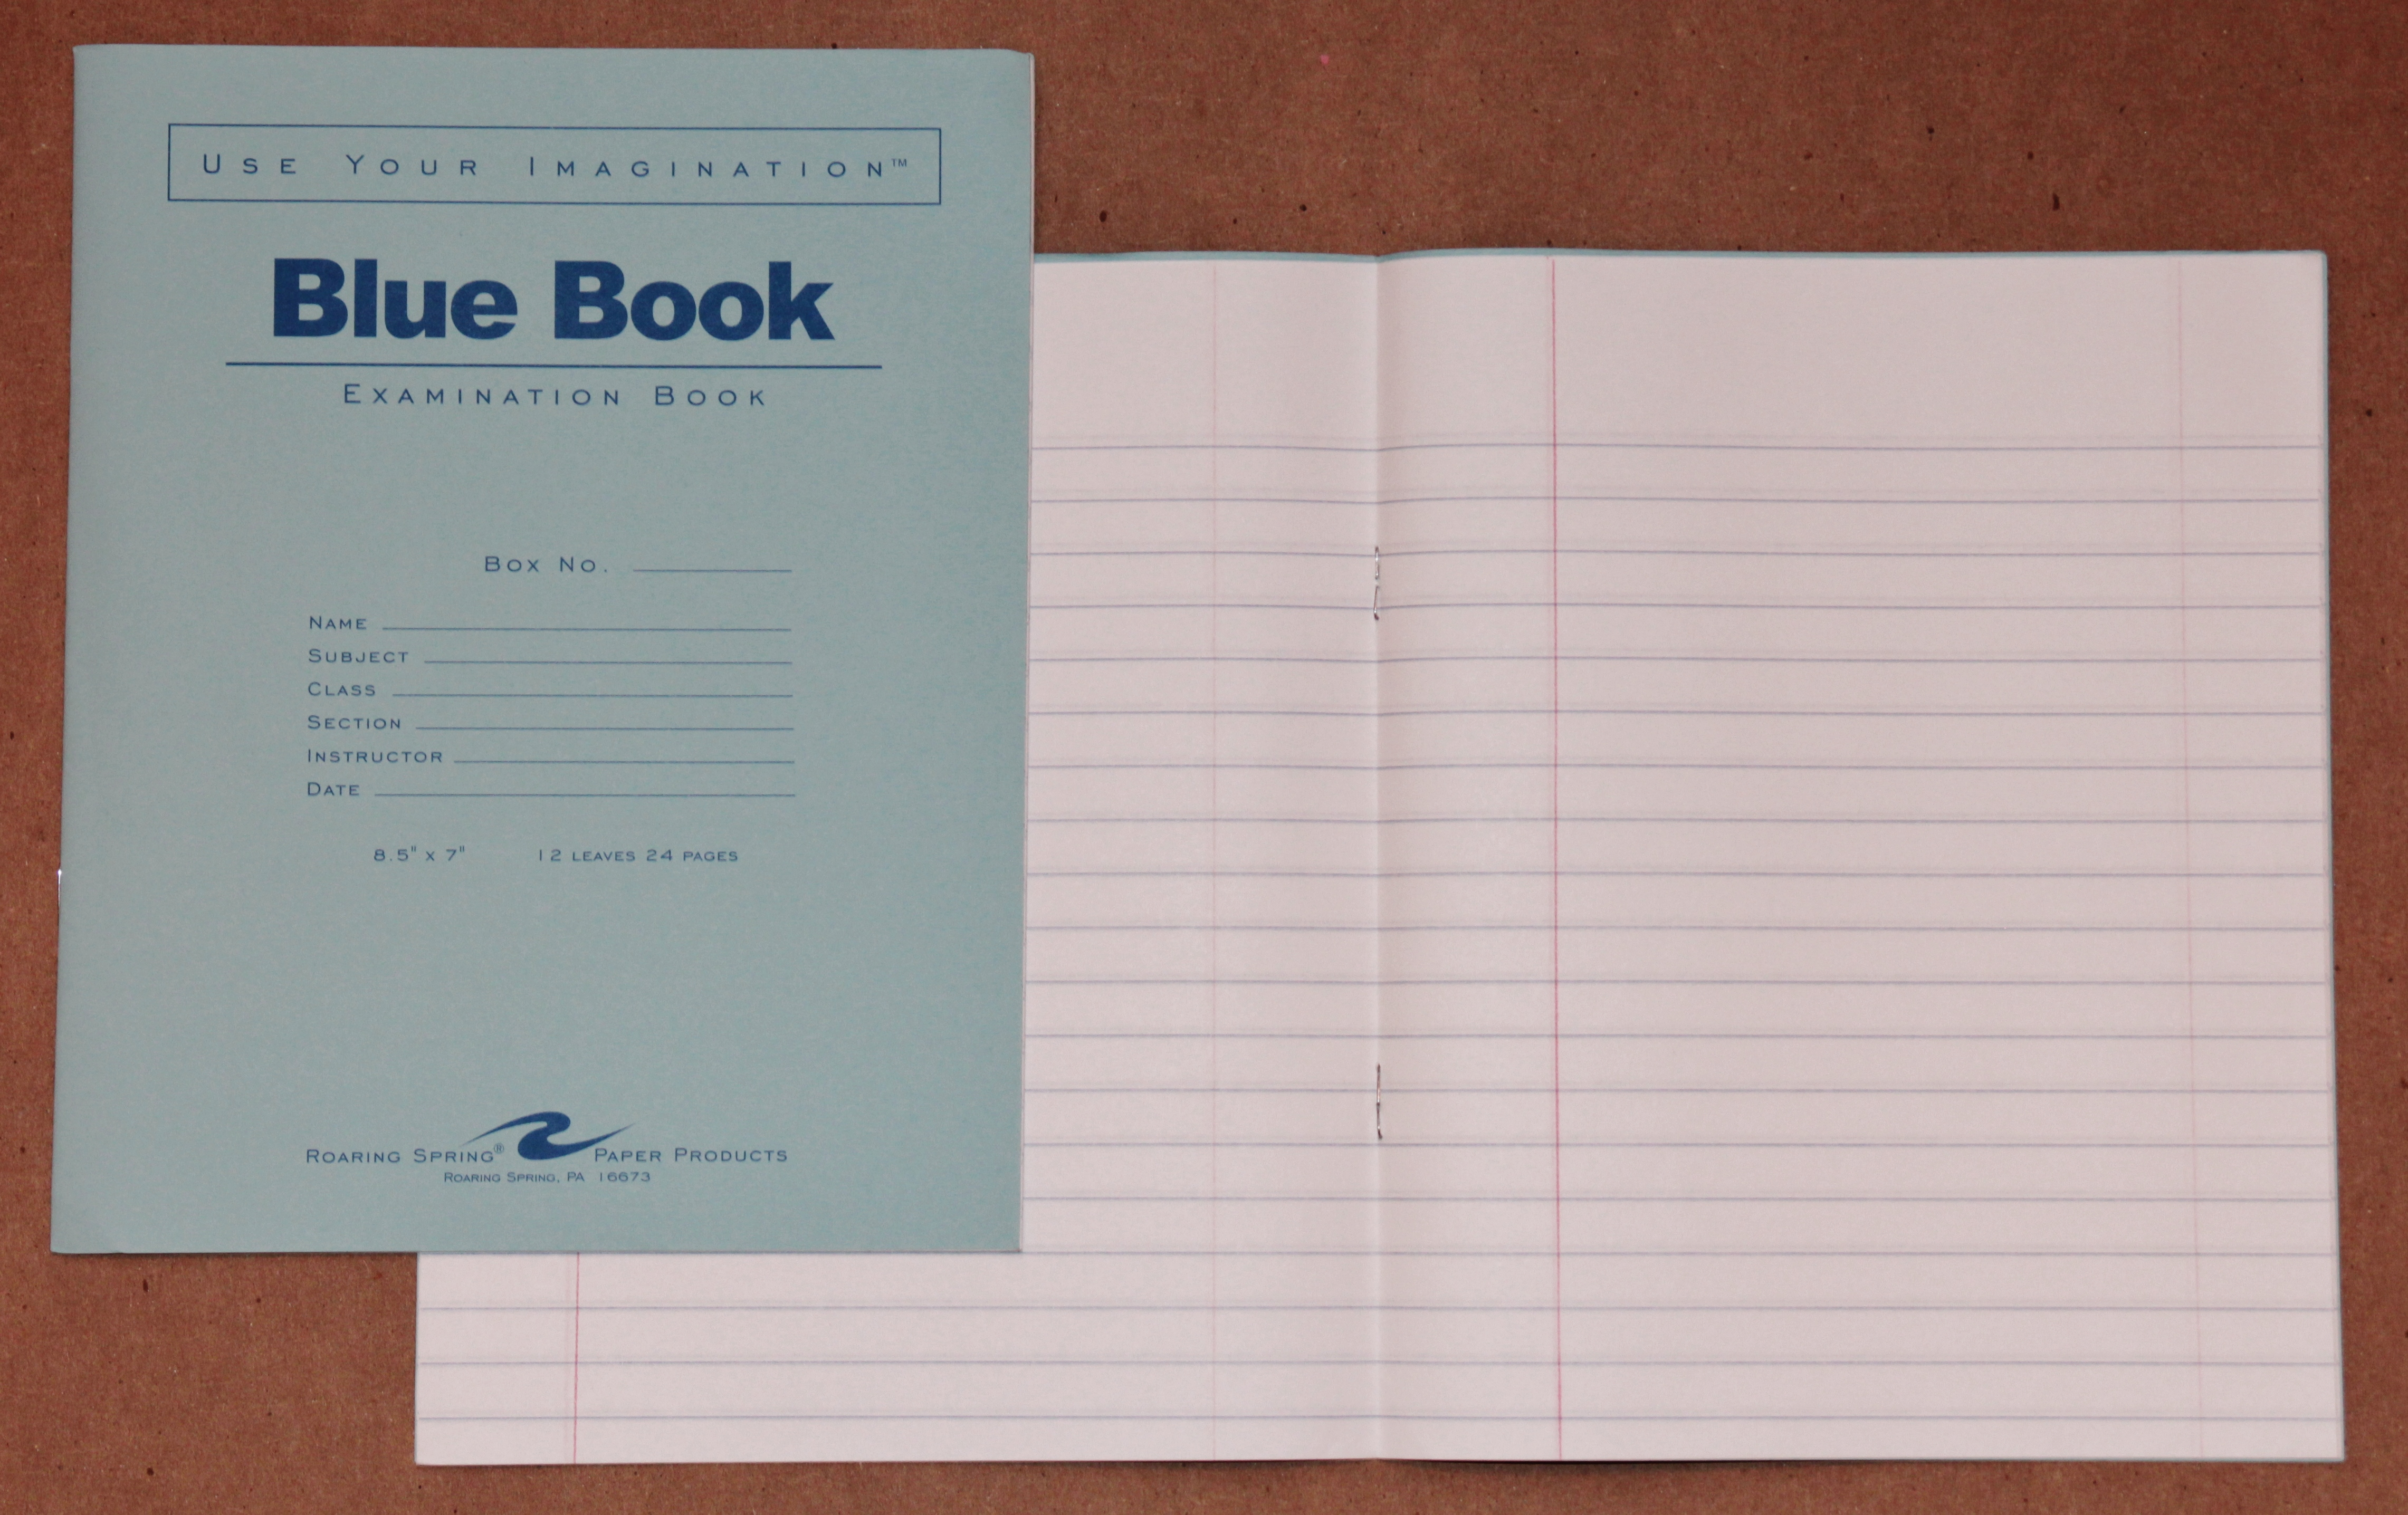 005 Blue Book Sheet Essay Magnificent Example Little Writing Full